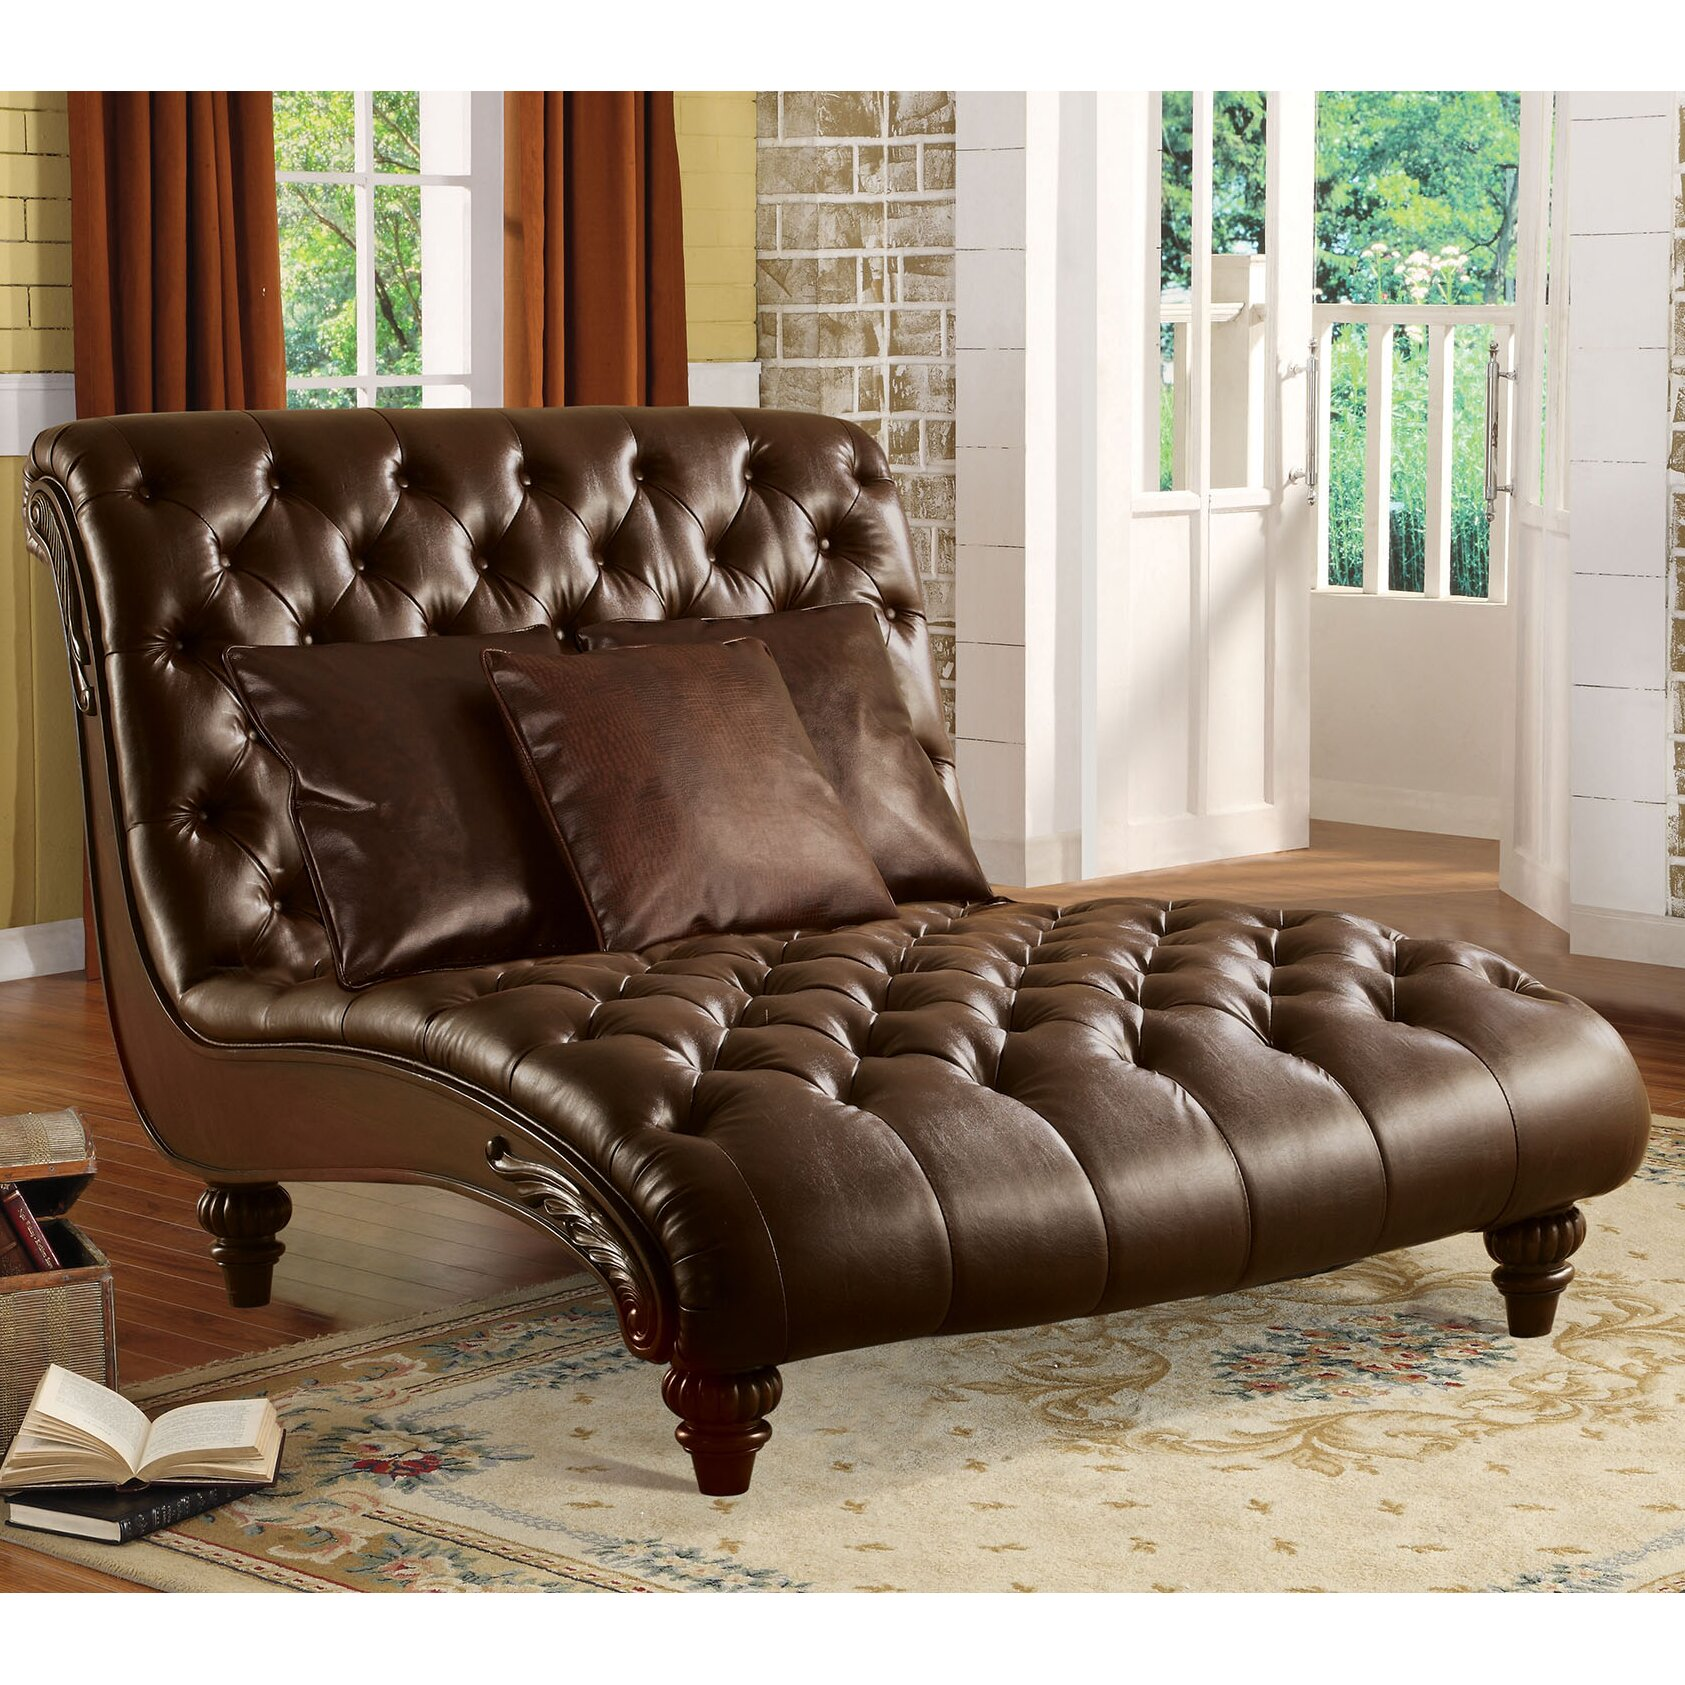 A Amp J Homes Studio Anondale Chaise Lounge Amp Reviews Wayfair Ca